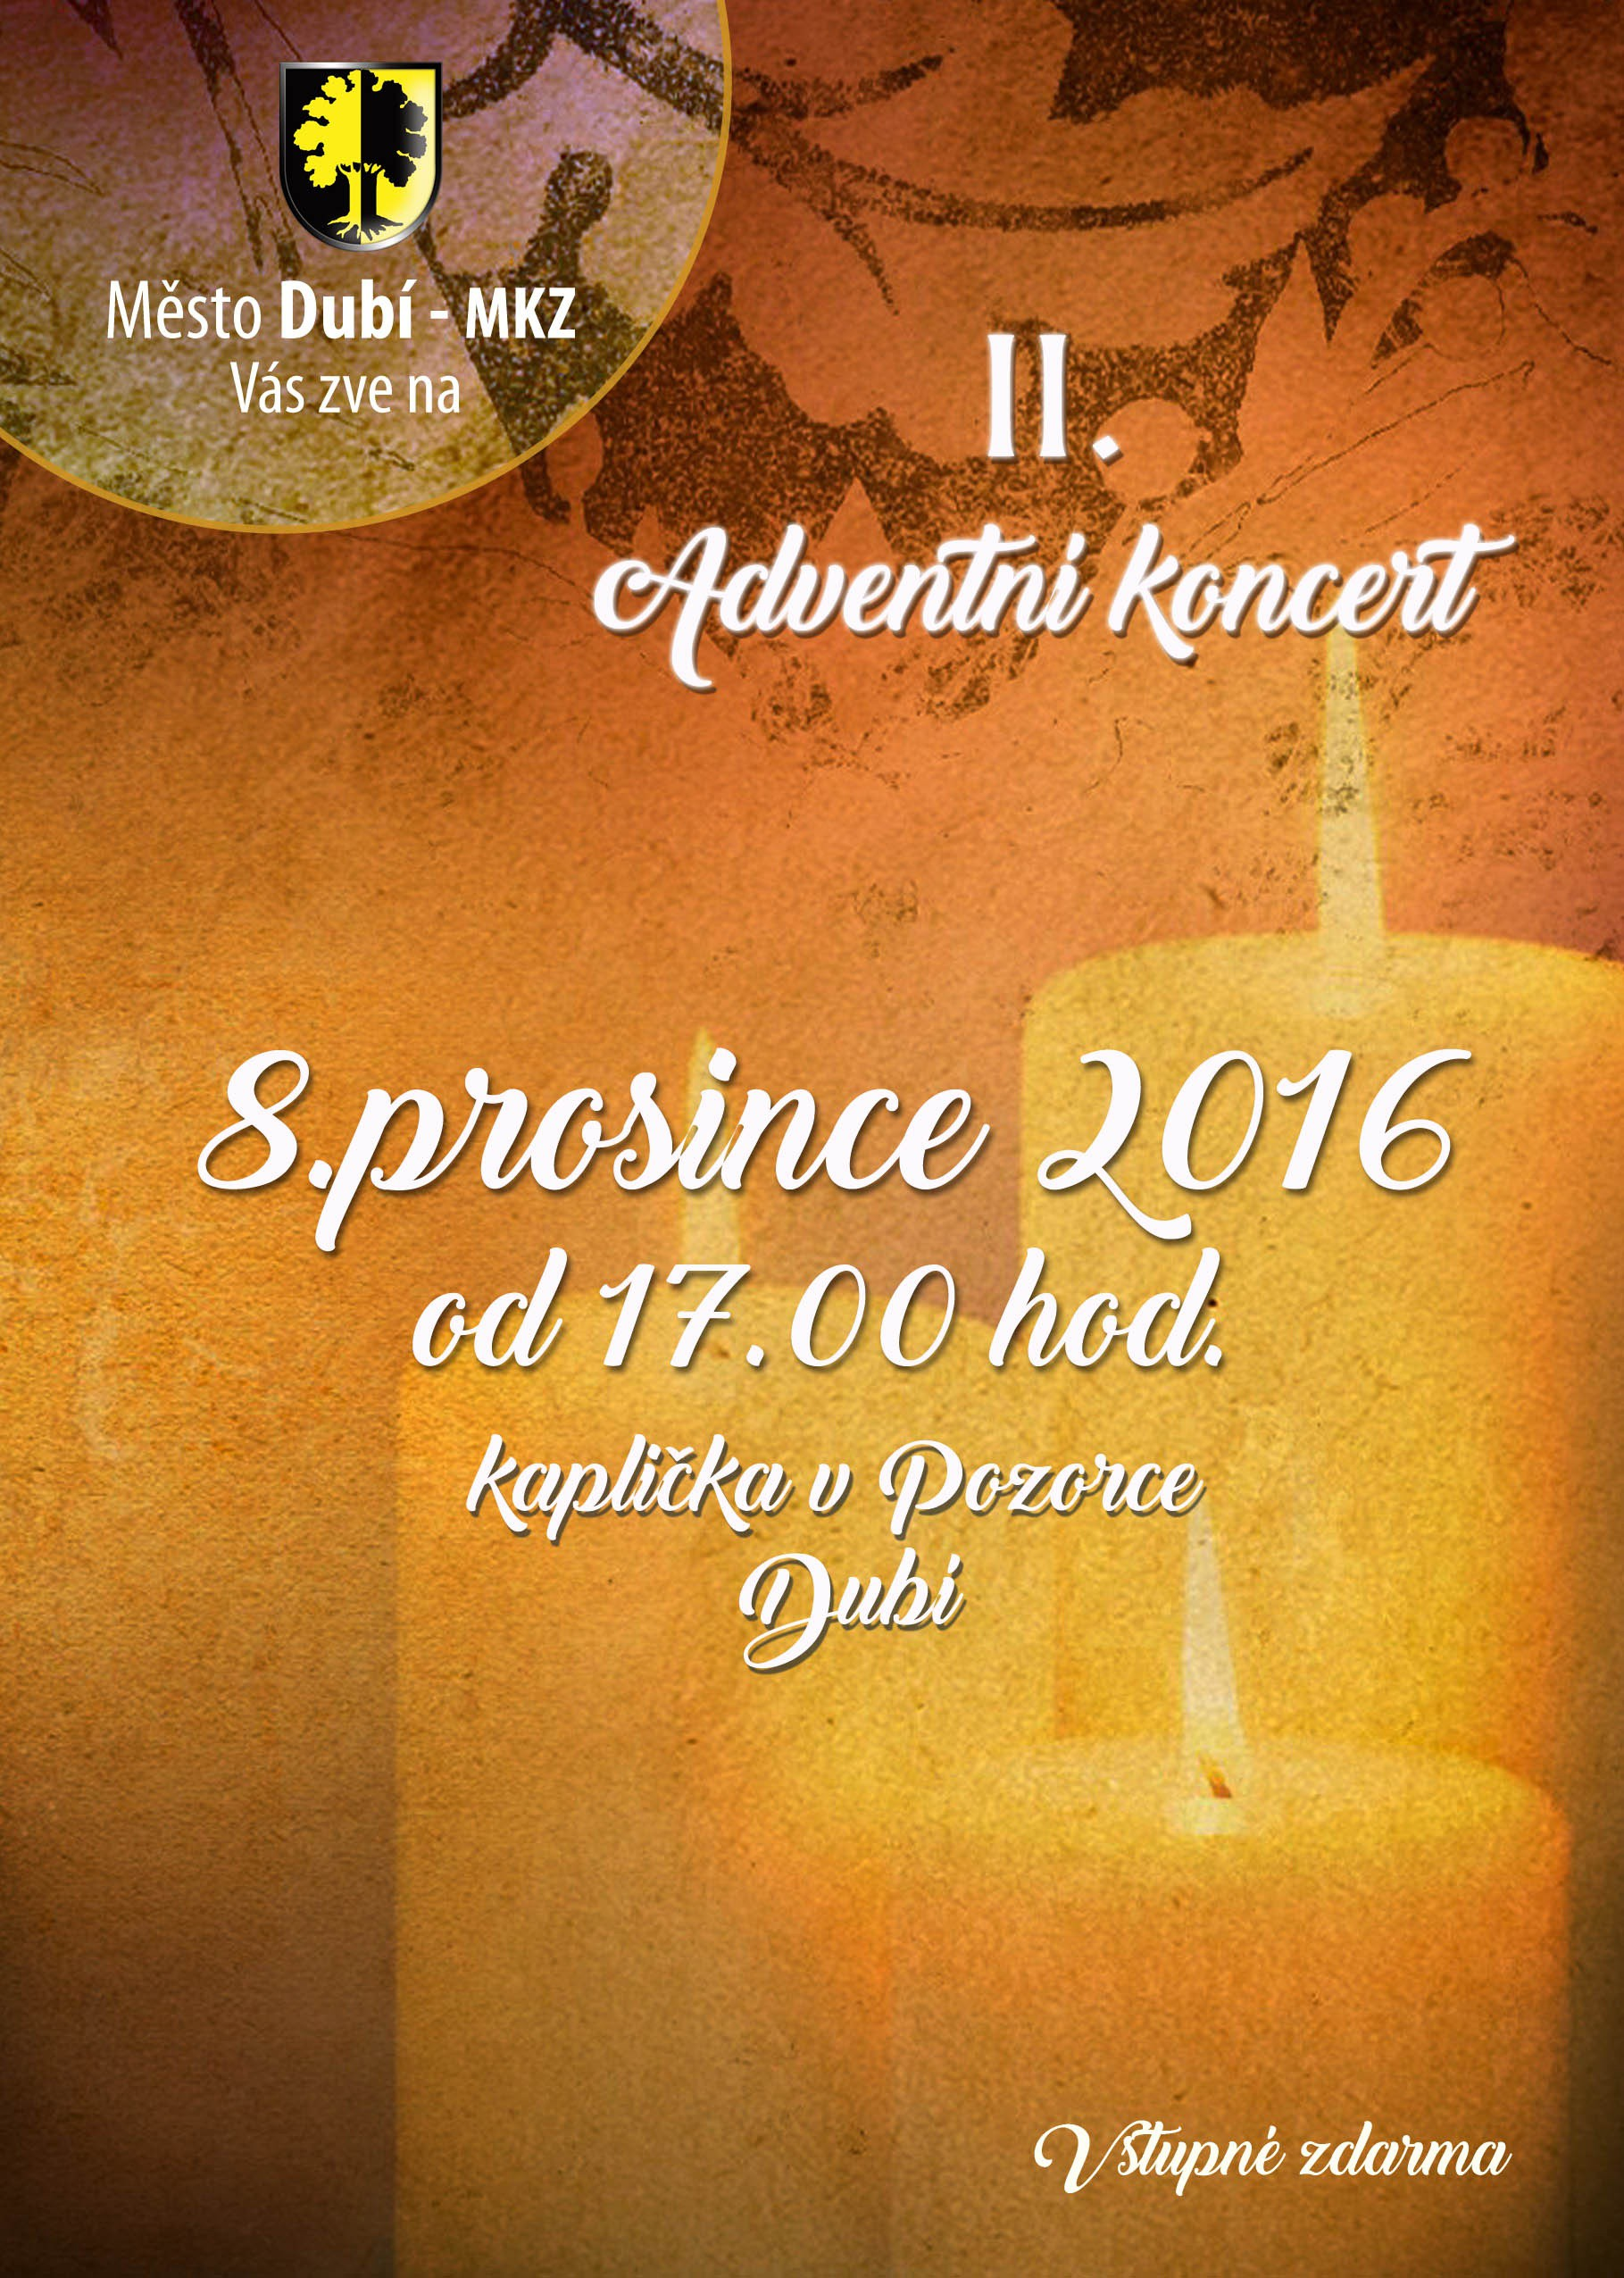 2.adventni-koncert-8.12.-2016-alwac.jpg